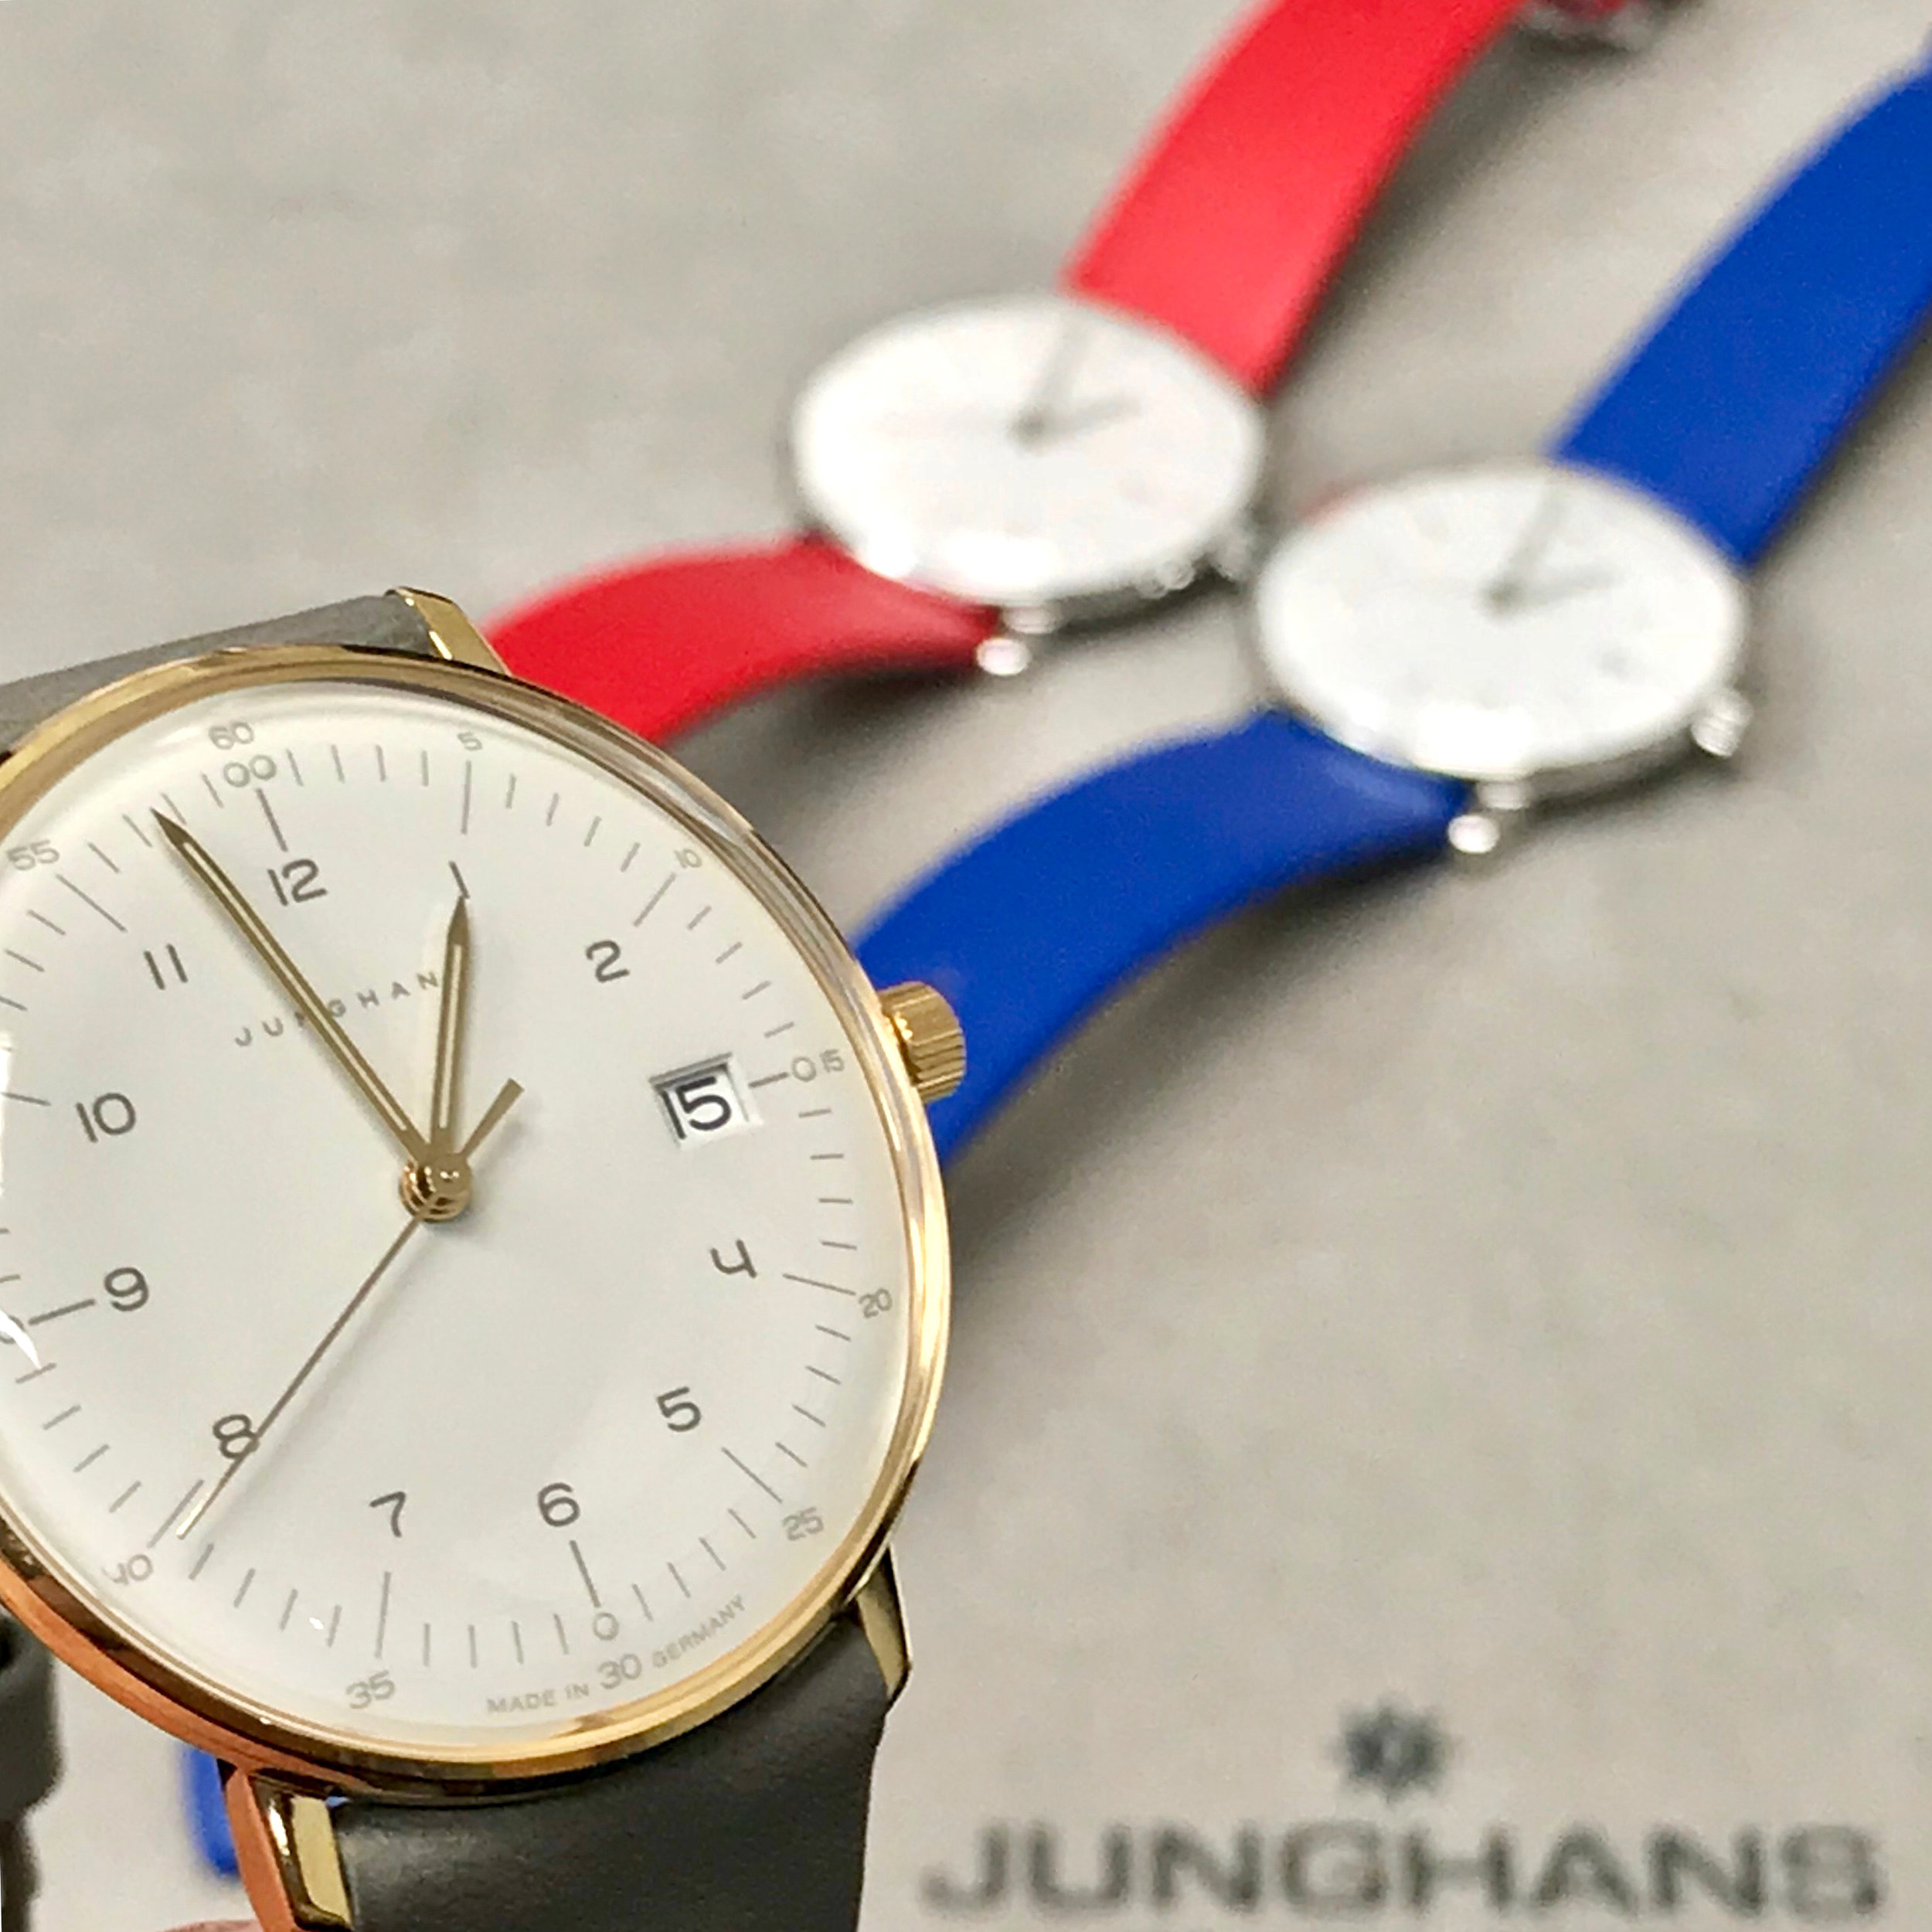 pieces shown  047/4551.00 (red) $495  047/4540.00 (blue) $495  047/7854.00 (gold case) $595